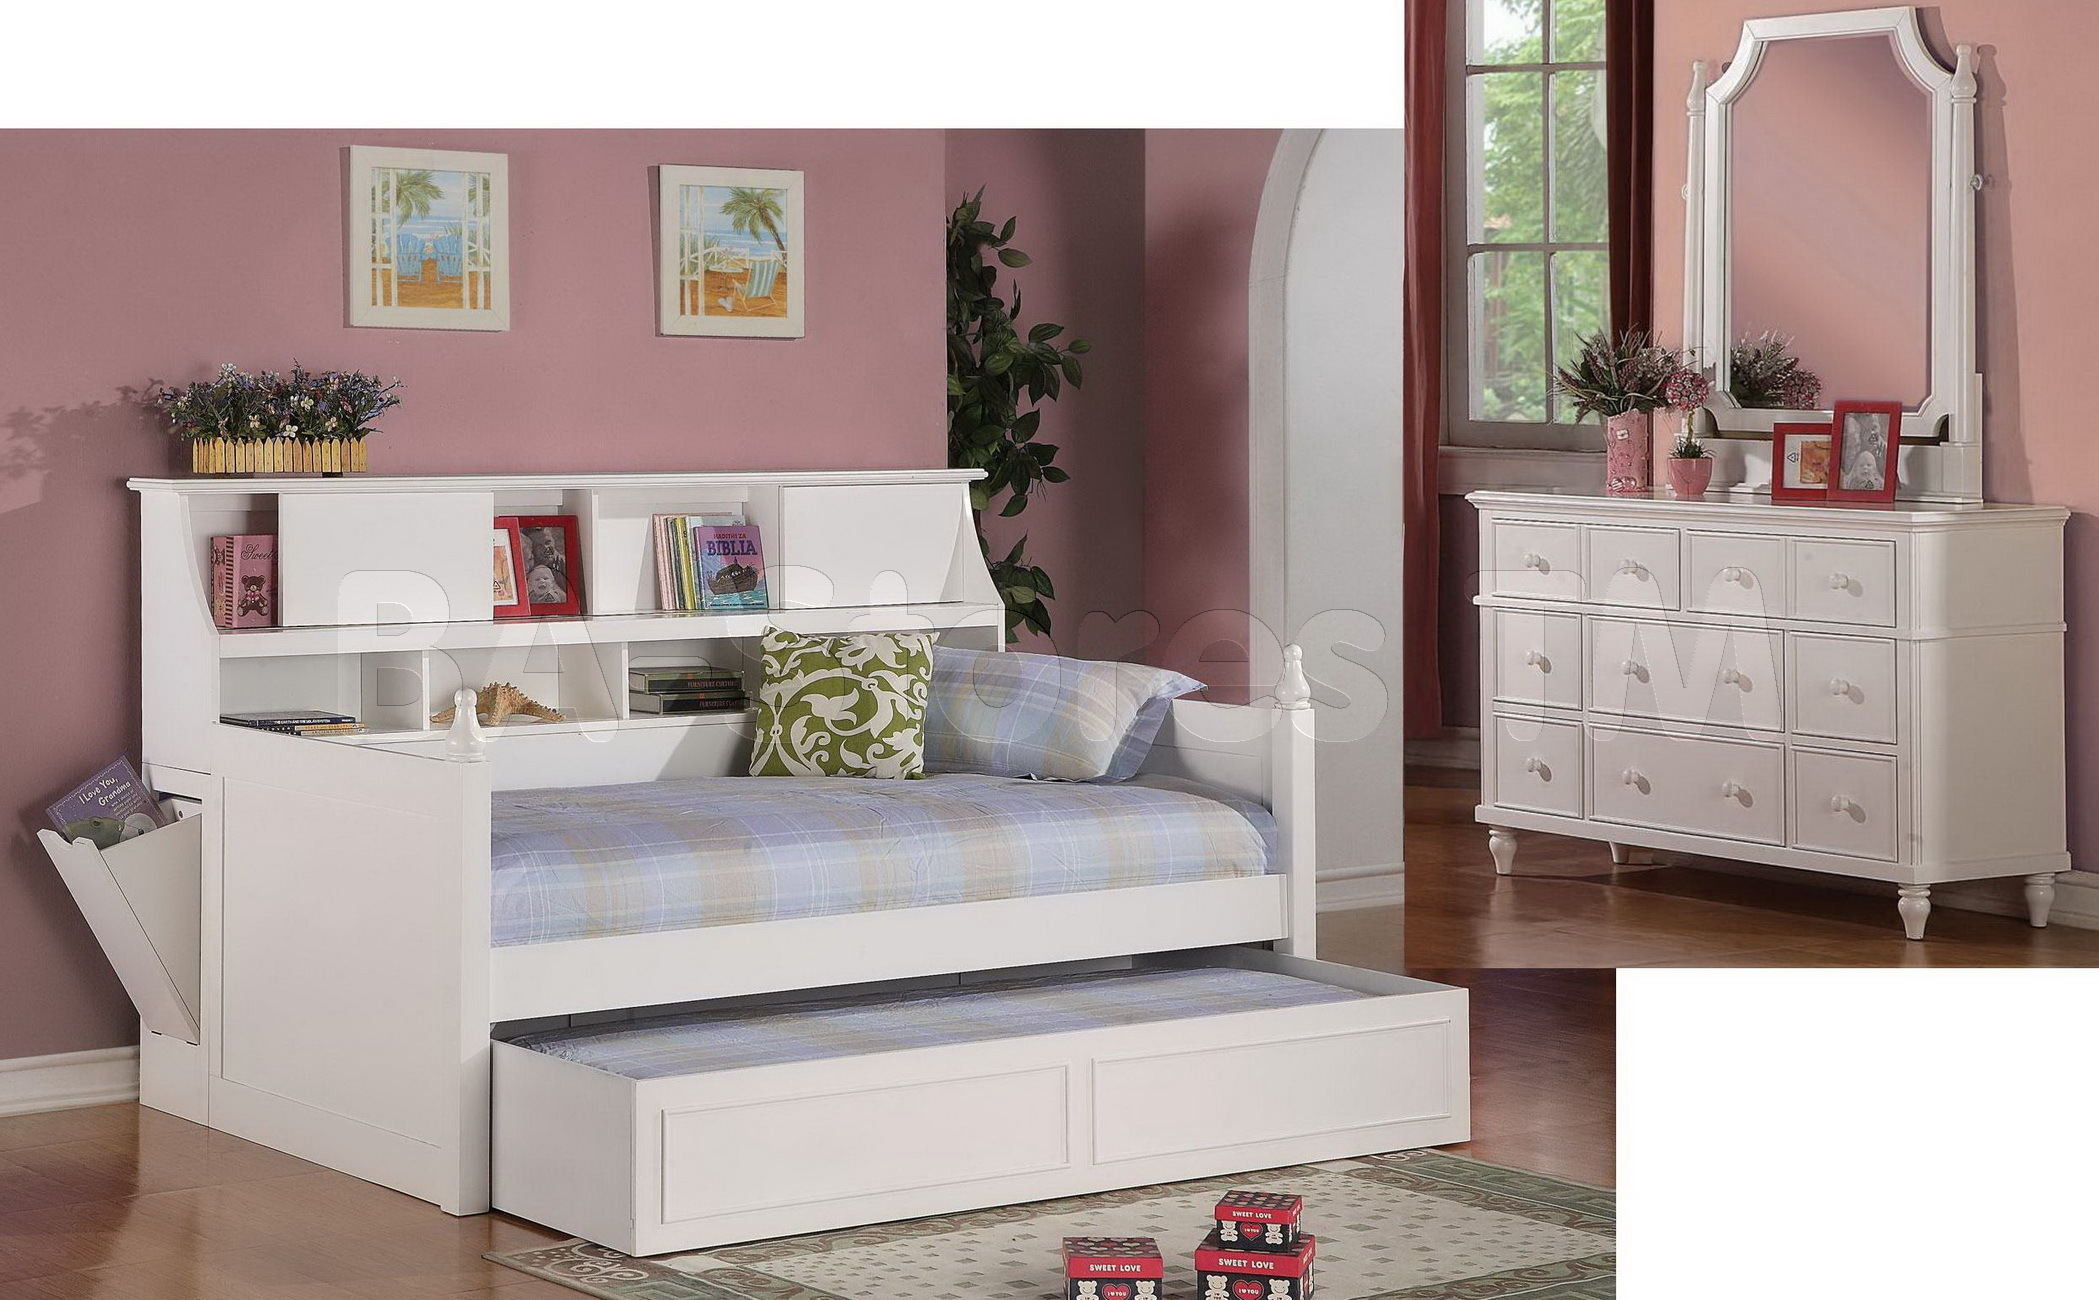 Full Size Trundle Beds for Adults | Full Size Daybed with Trundle | Pottery Barn Daybed